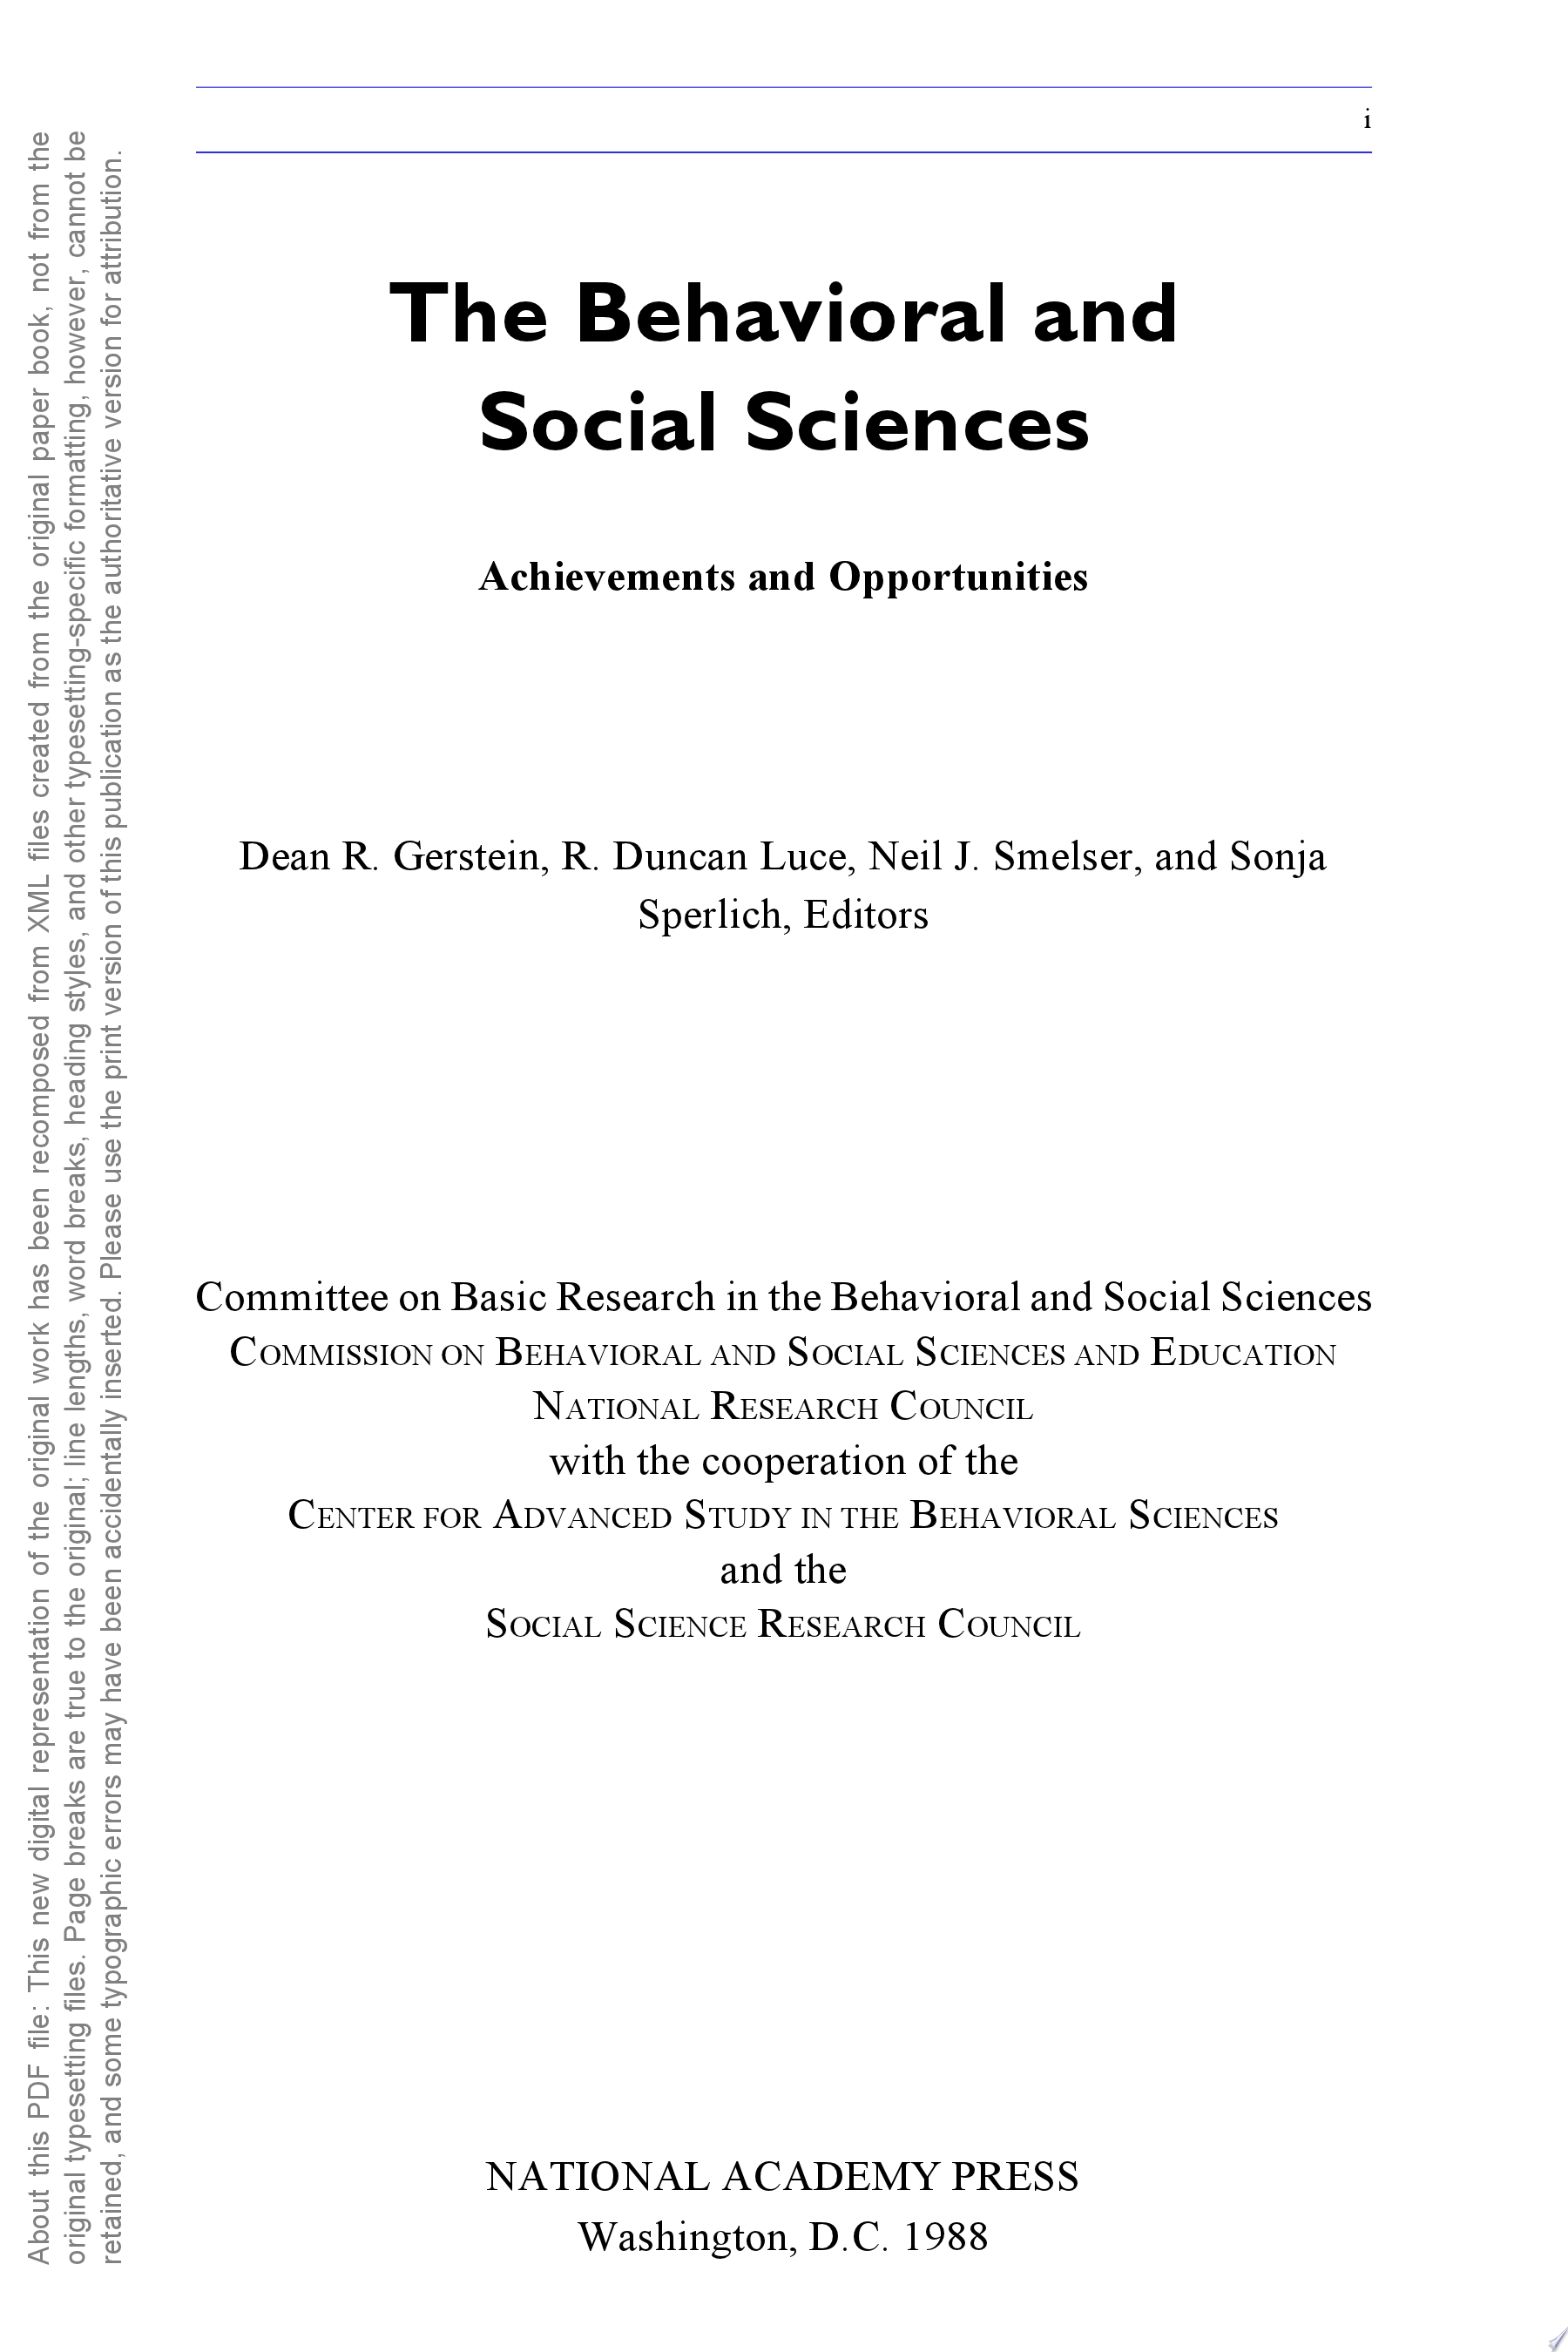 The Behavioral and Social Sciences